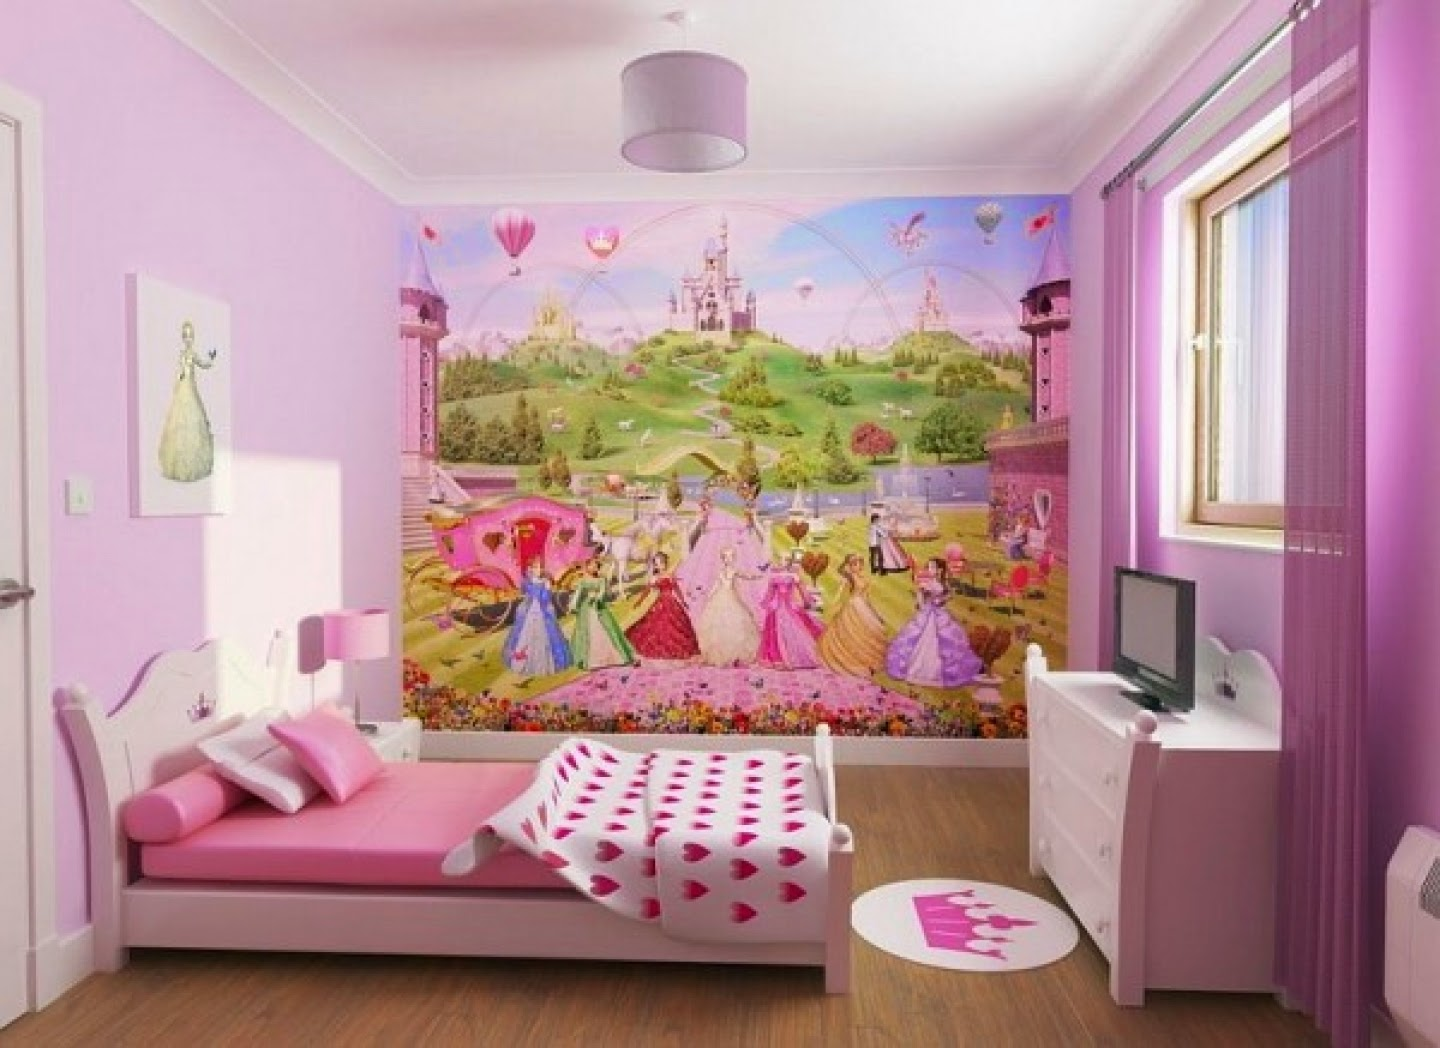 Teenage Girls Girl Rooms Room Wall Decals Color Ideas Teenage Girls - Wall decals for teenage : teen girl wall decals - www.pureclipart.com